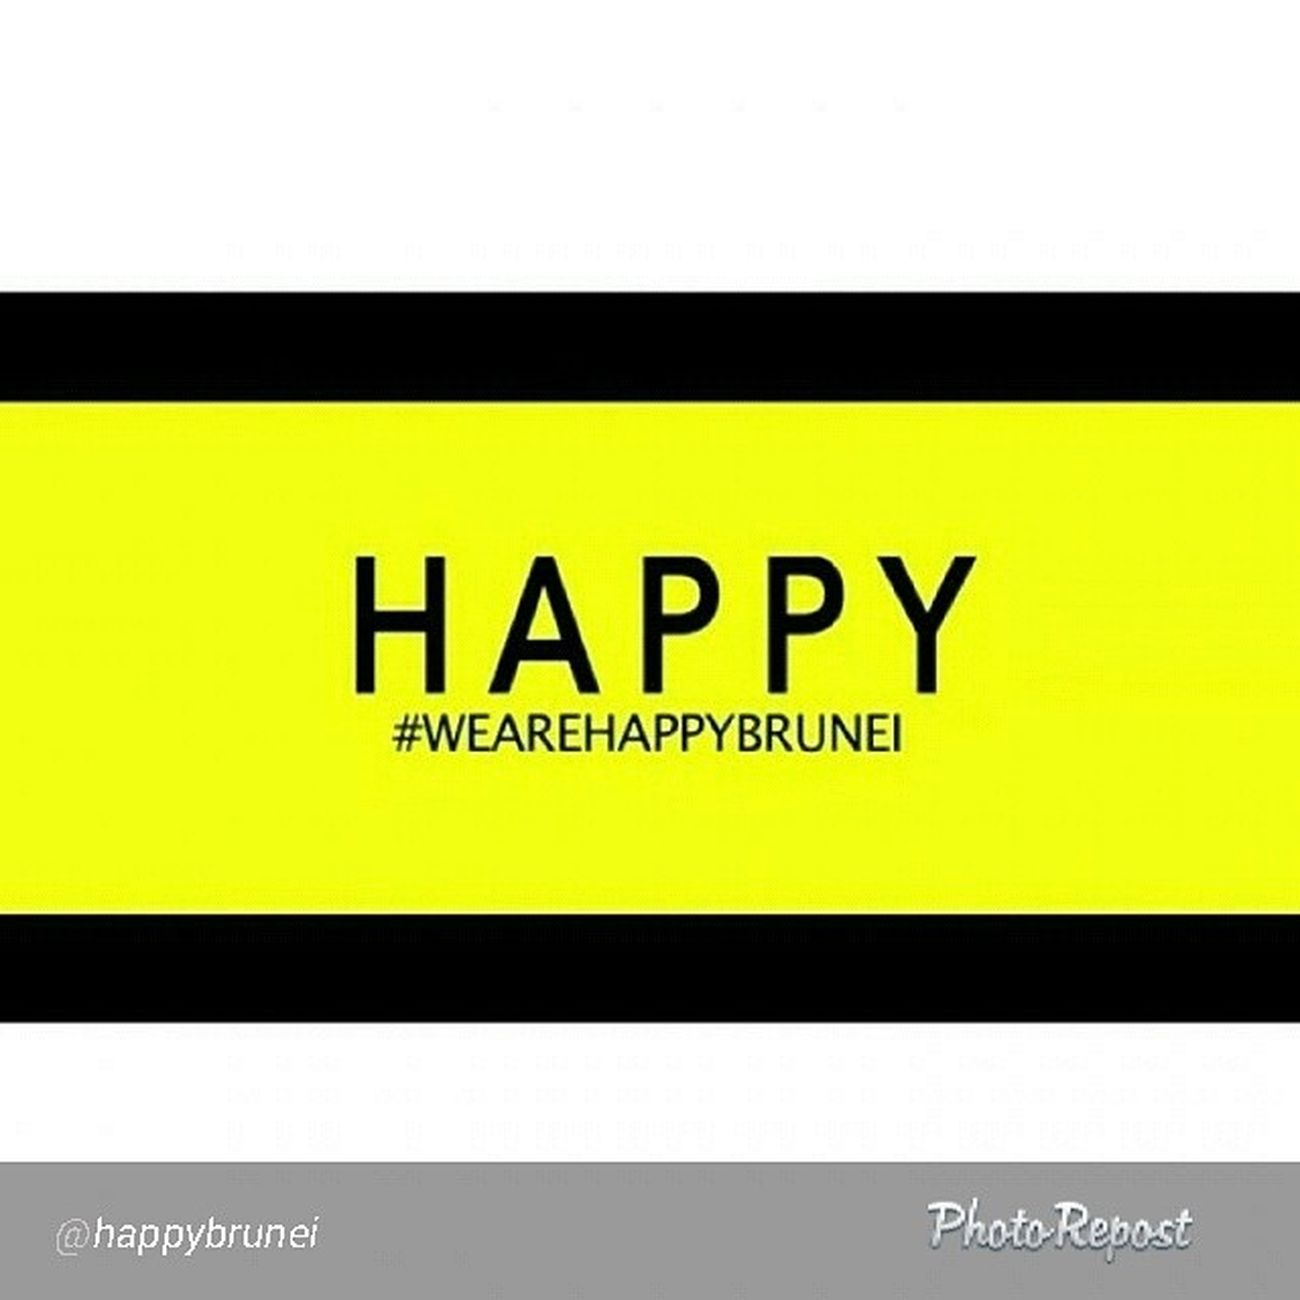 """By @happybrunei """"It's LIVE! Go to our profile for the direct link to the video. HappyBrunei Brunei Wearehappybrunei """" via @PhotoRepost_app"""